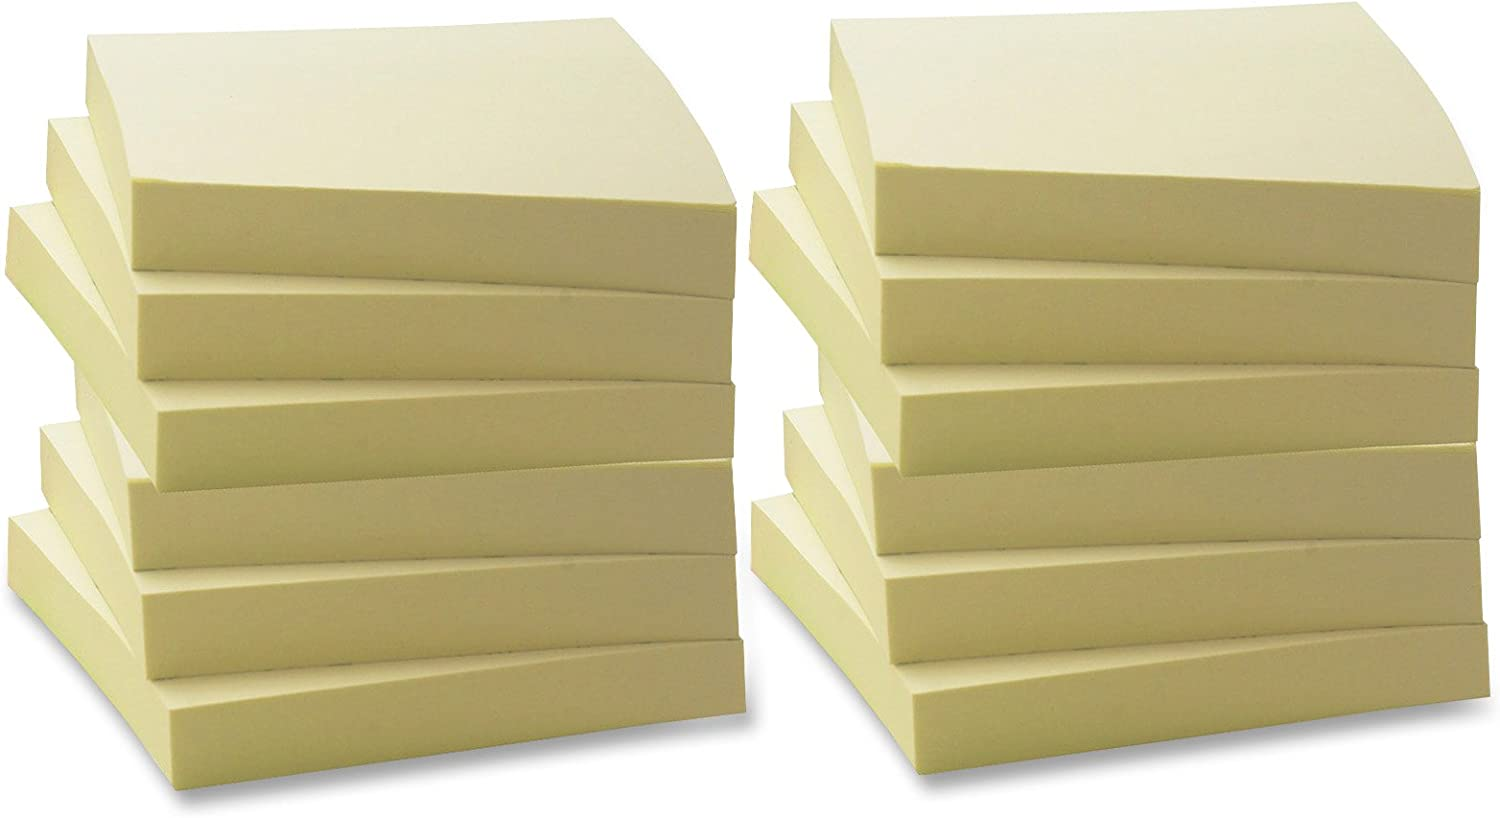 3 x 3 Business Source Yellow Repositionable Adhesive Notes 2 Dozen - 24 Pads 36612